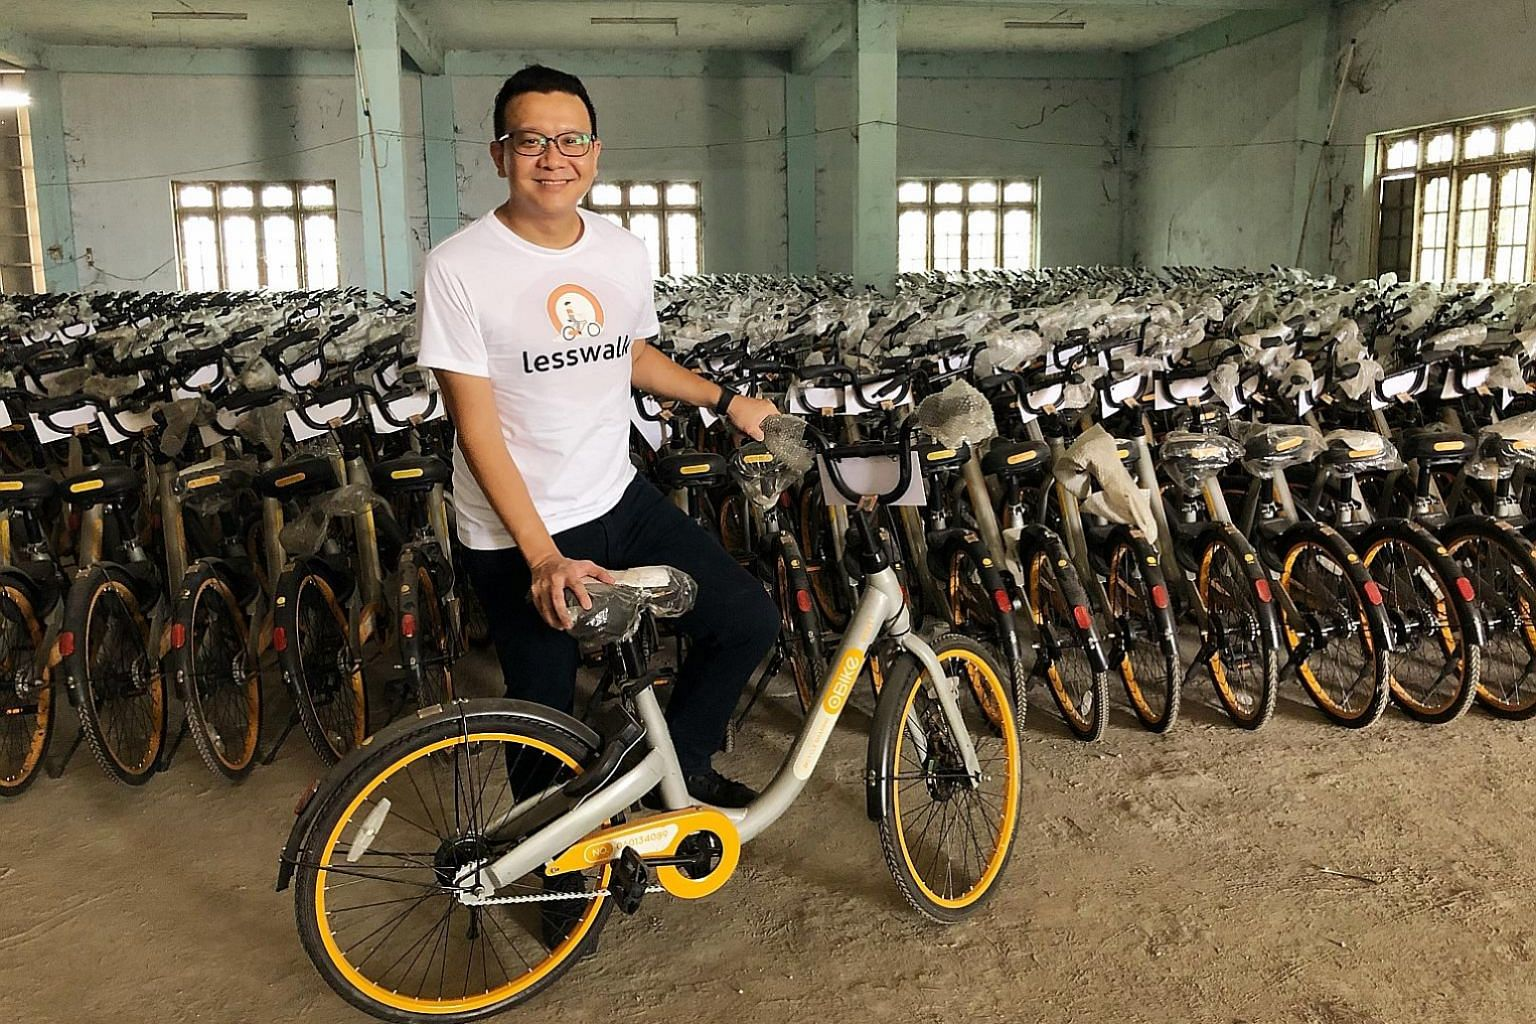 Mr Mike Than Tun Win, founder of Lesswalk, aims to distribute 10,000 bicycles from failed bike-sharing firms oBike and ofo to needy students in Myanmar by the year end. He hopes his work will inspire a coordinated movement worldwide.